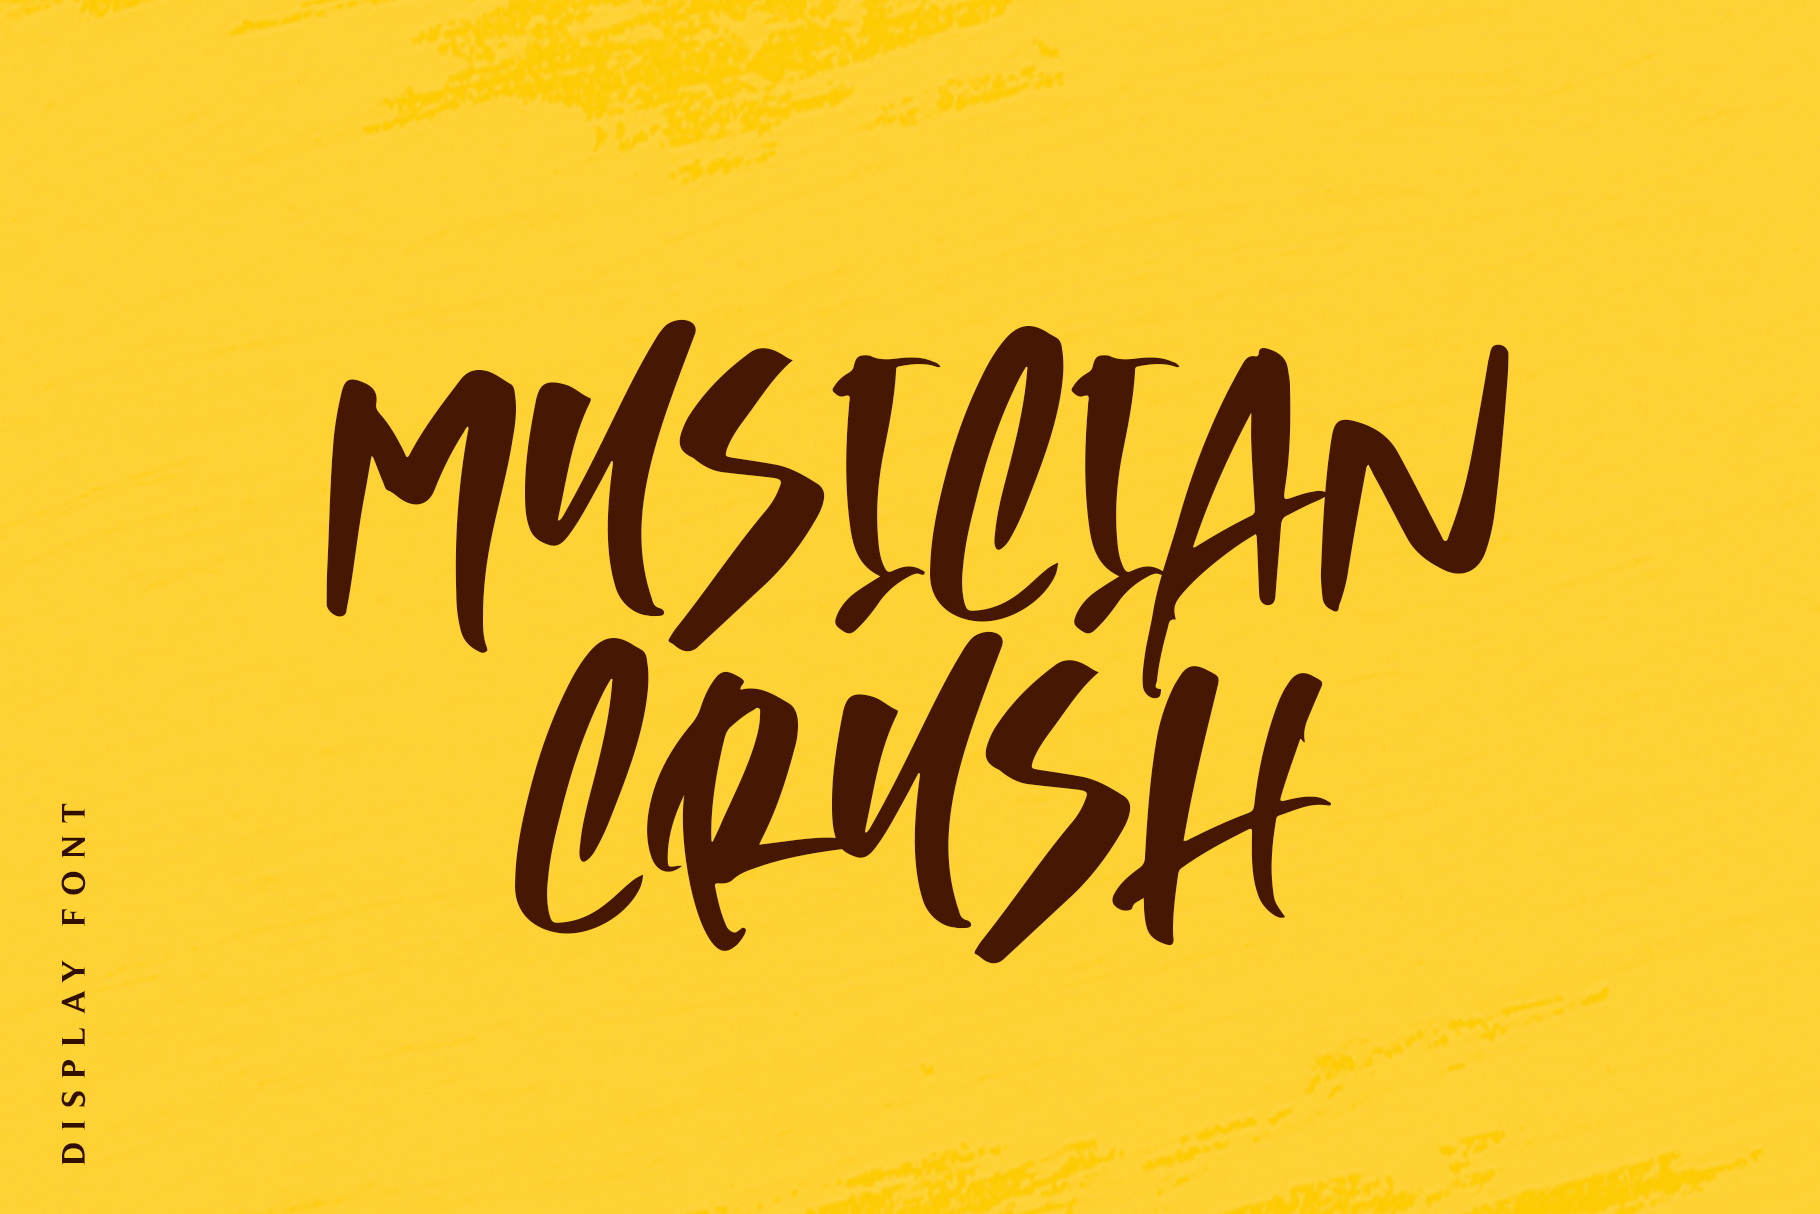 Musician Crush example image 1